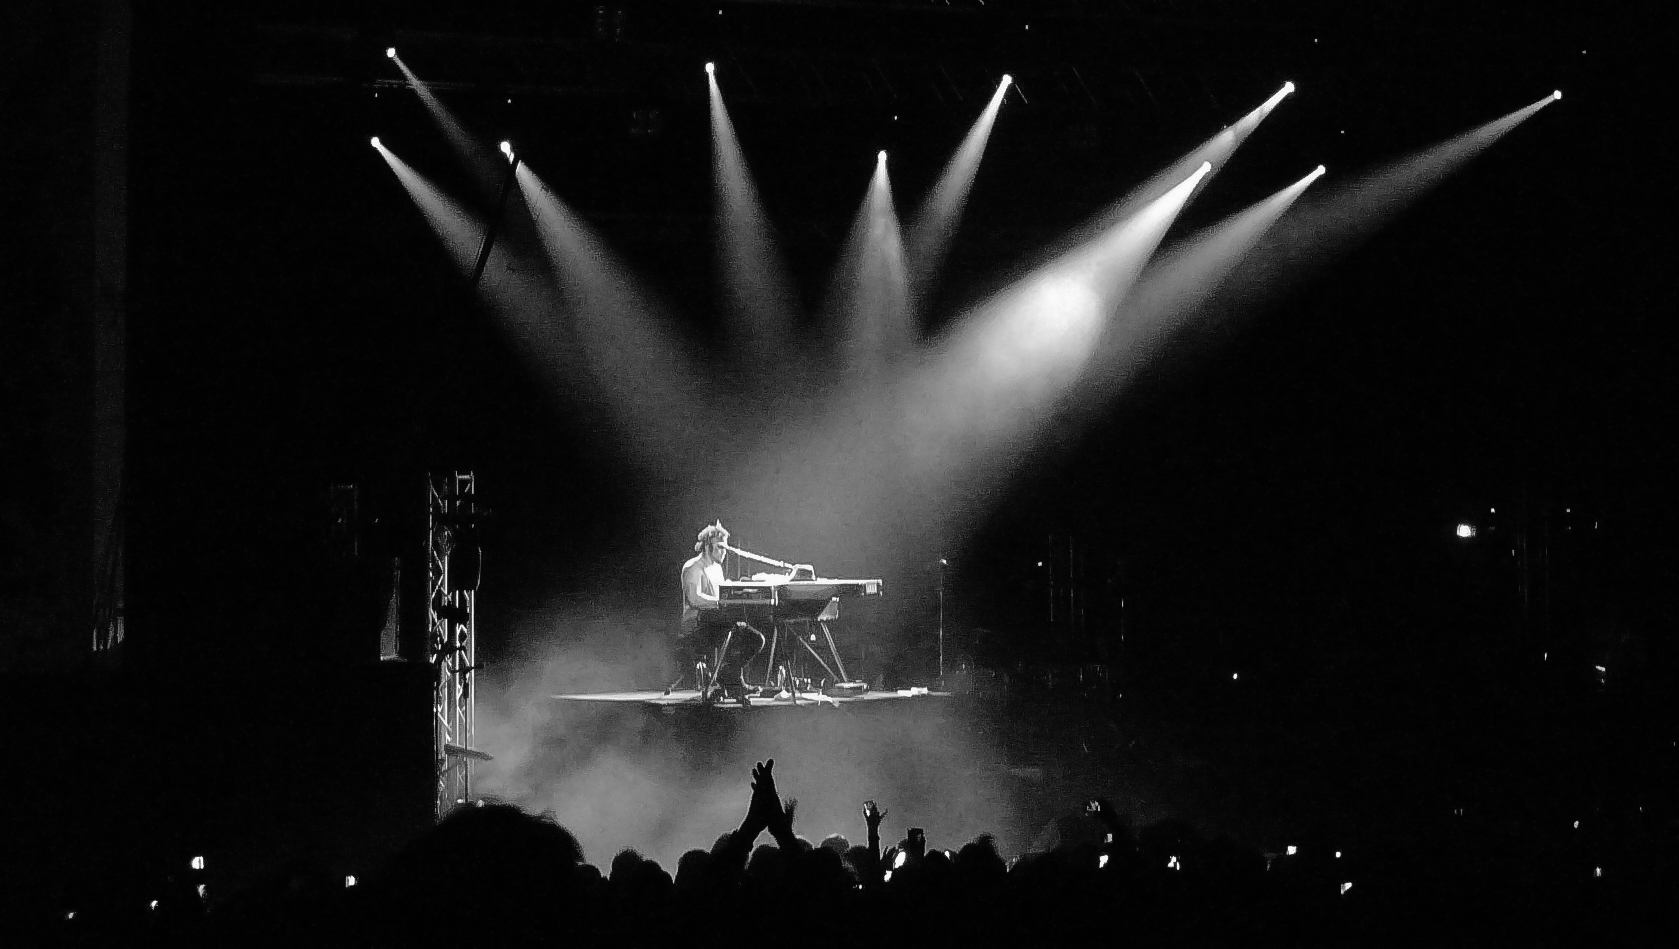 D'Angelo performing at Brixton Academy, February 2012. Photo credit: Phil Sheard